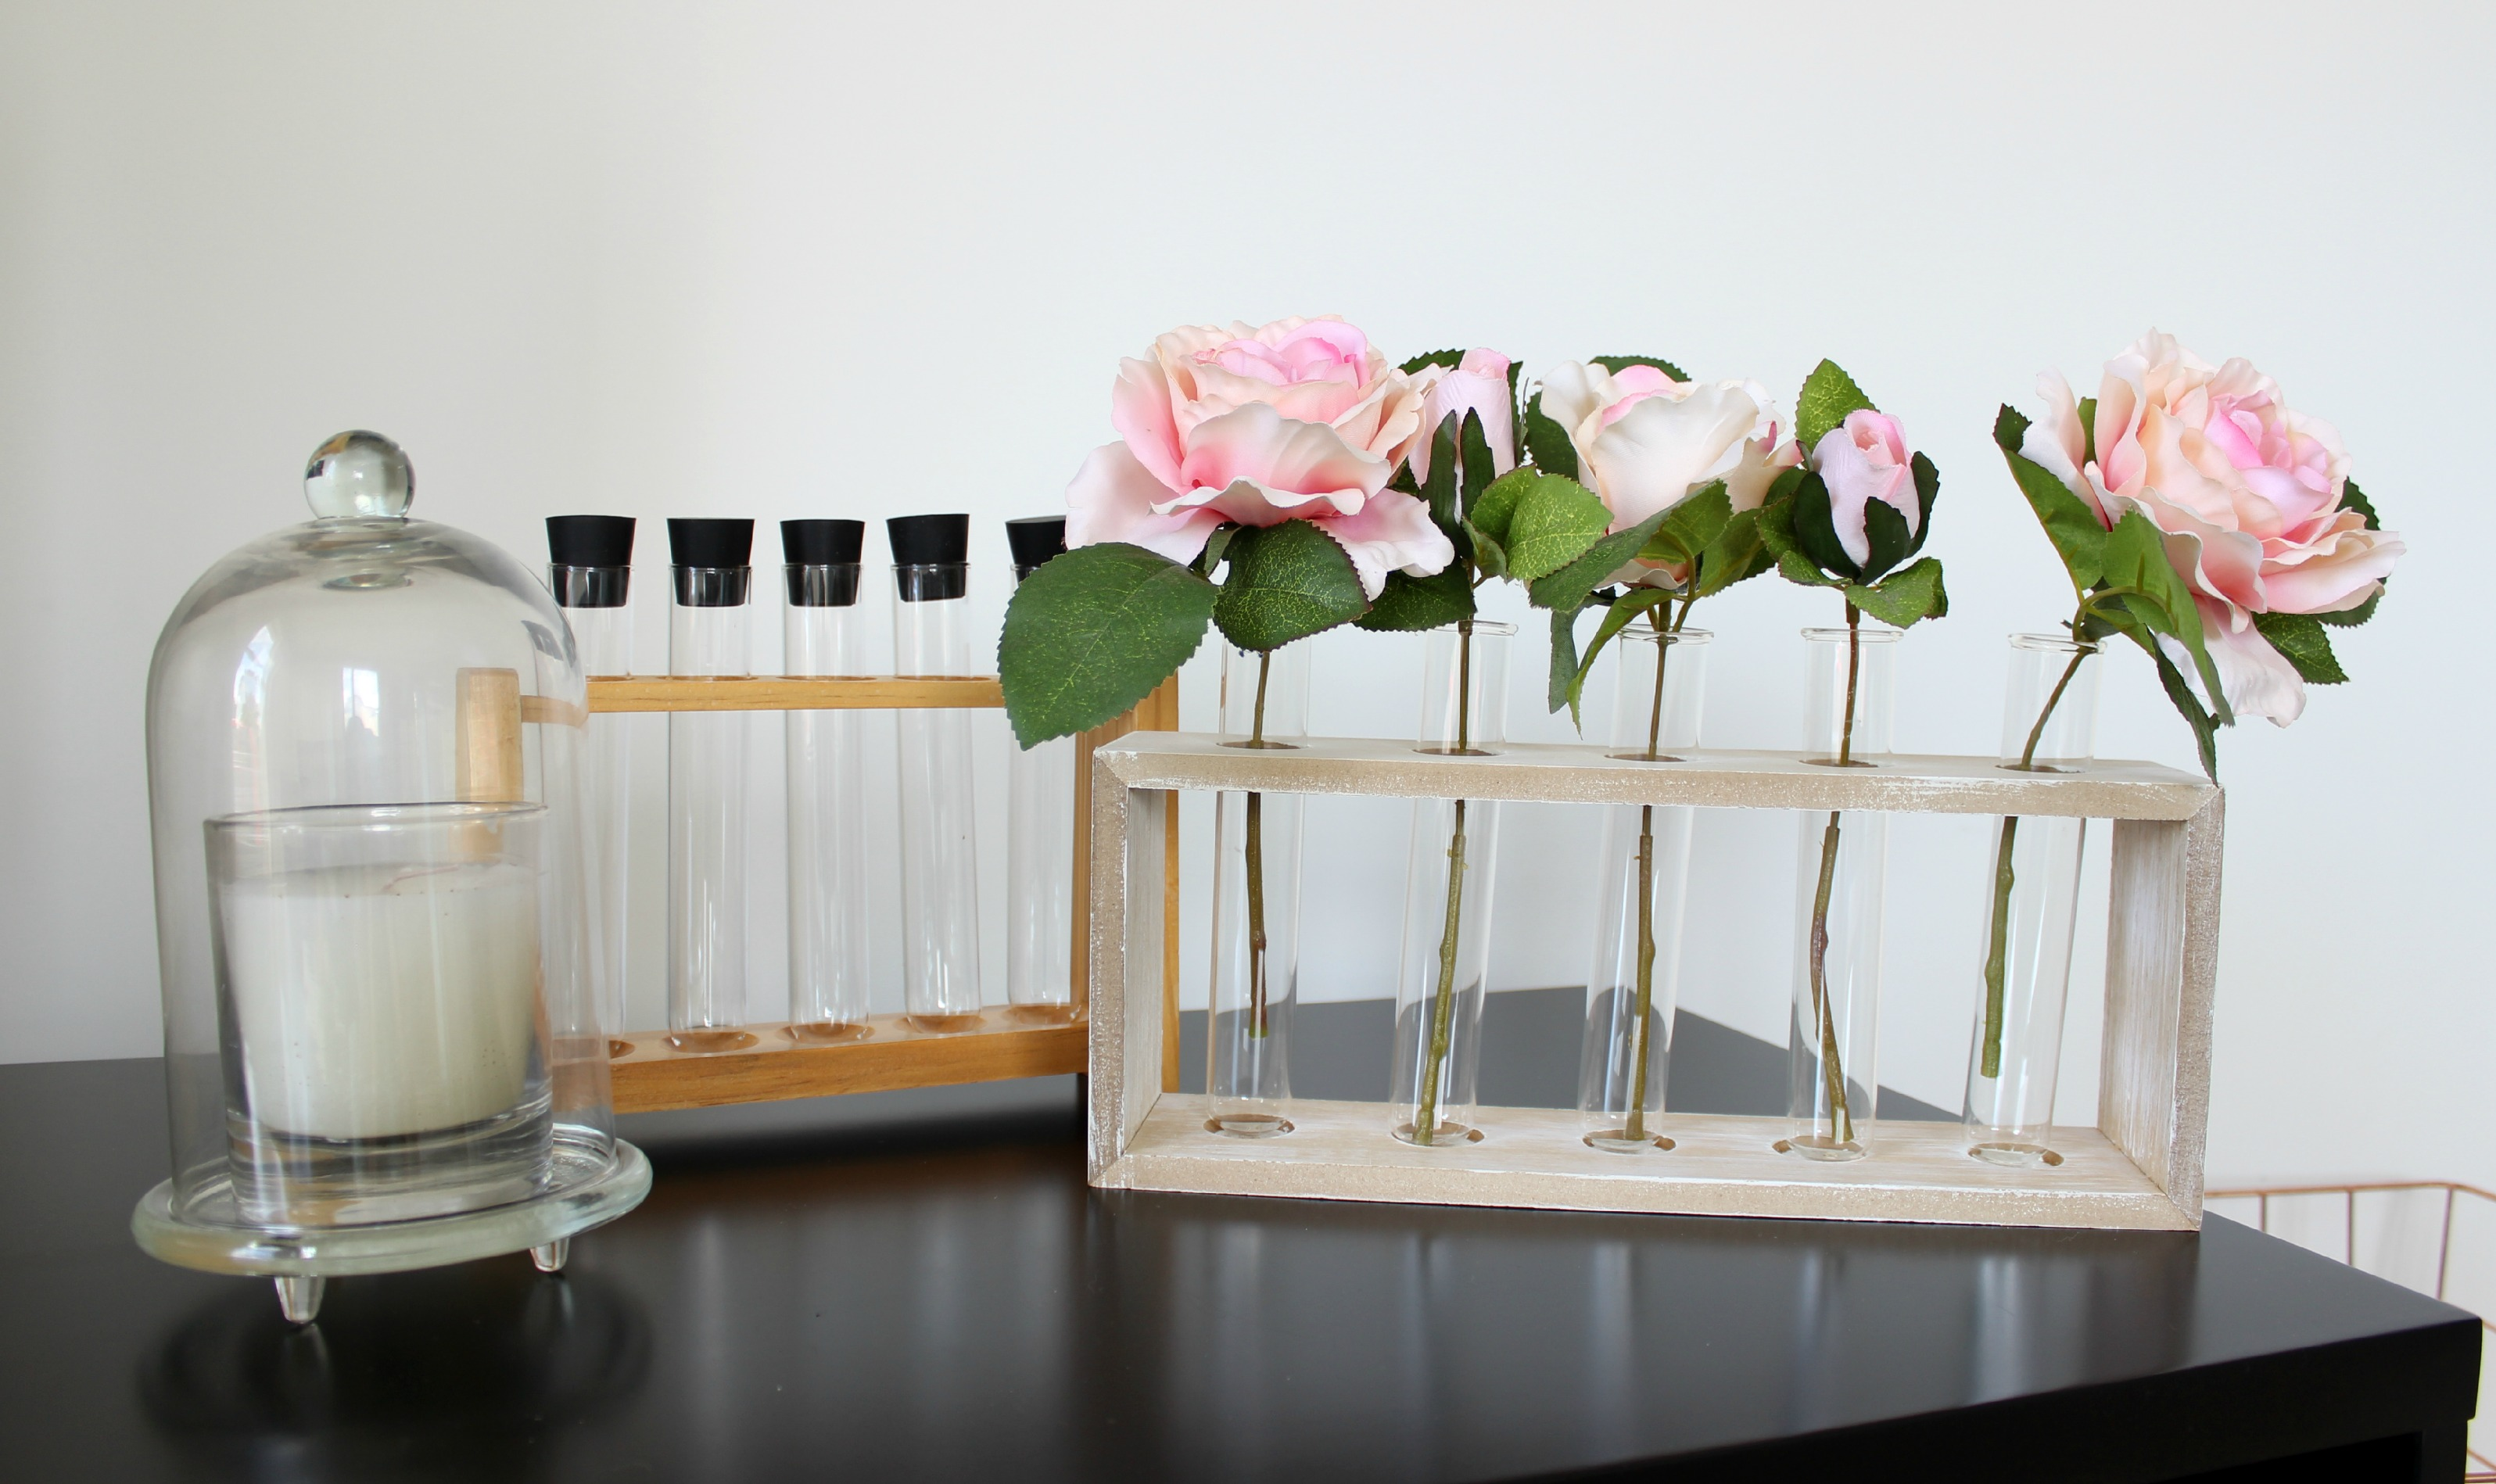 Beau Kmart Home Haul Homewares Test Tube Vase